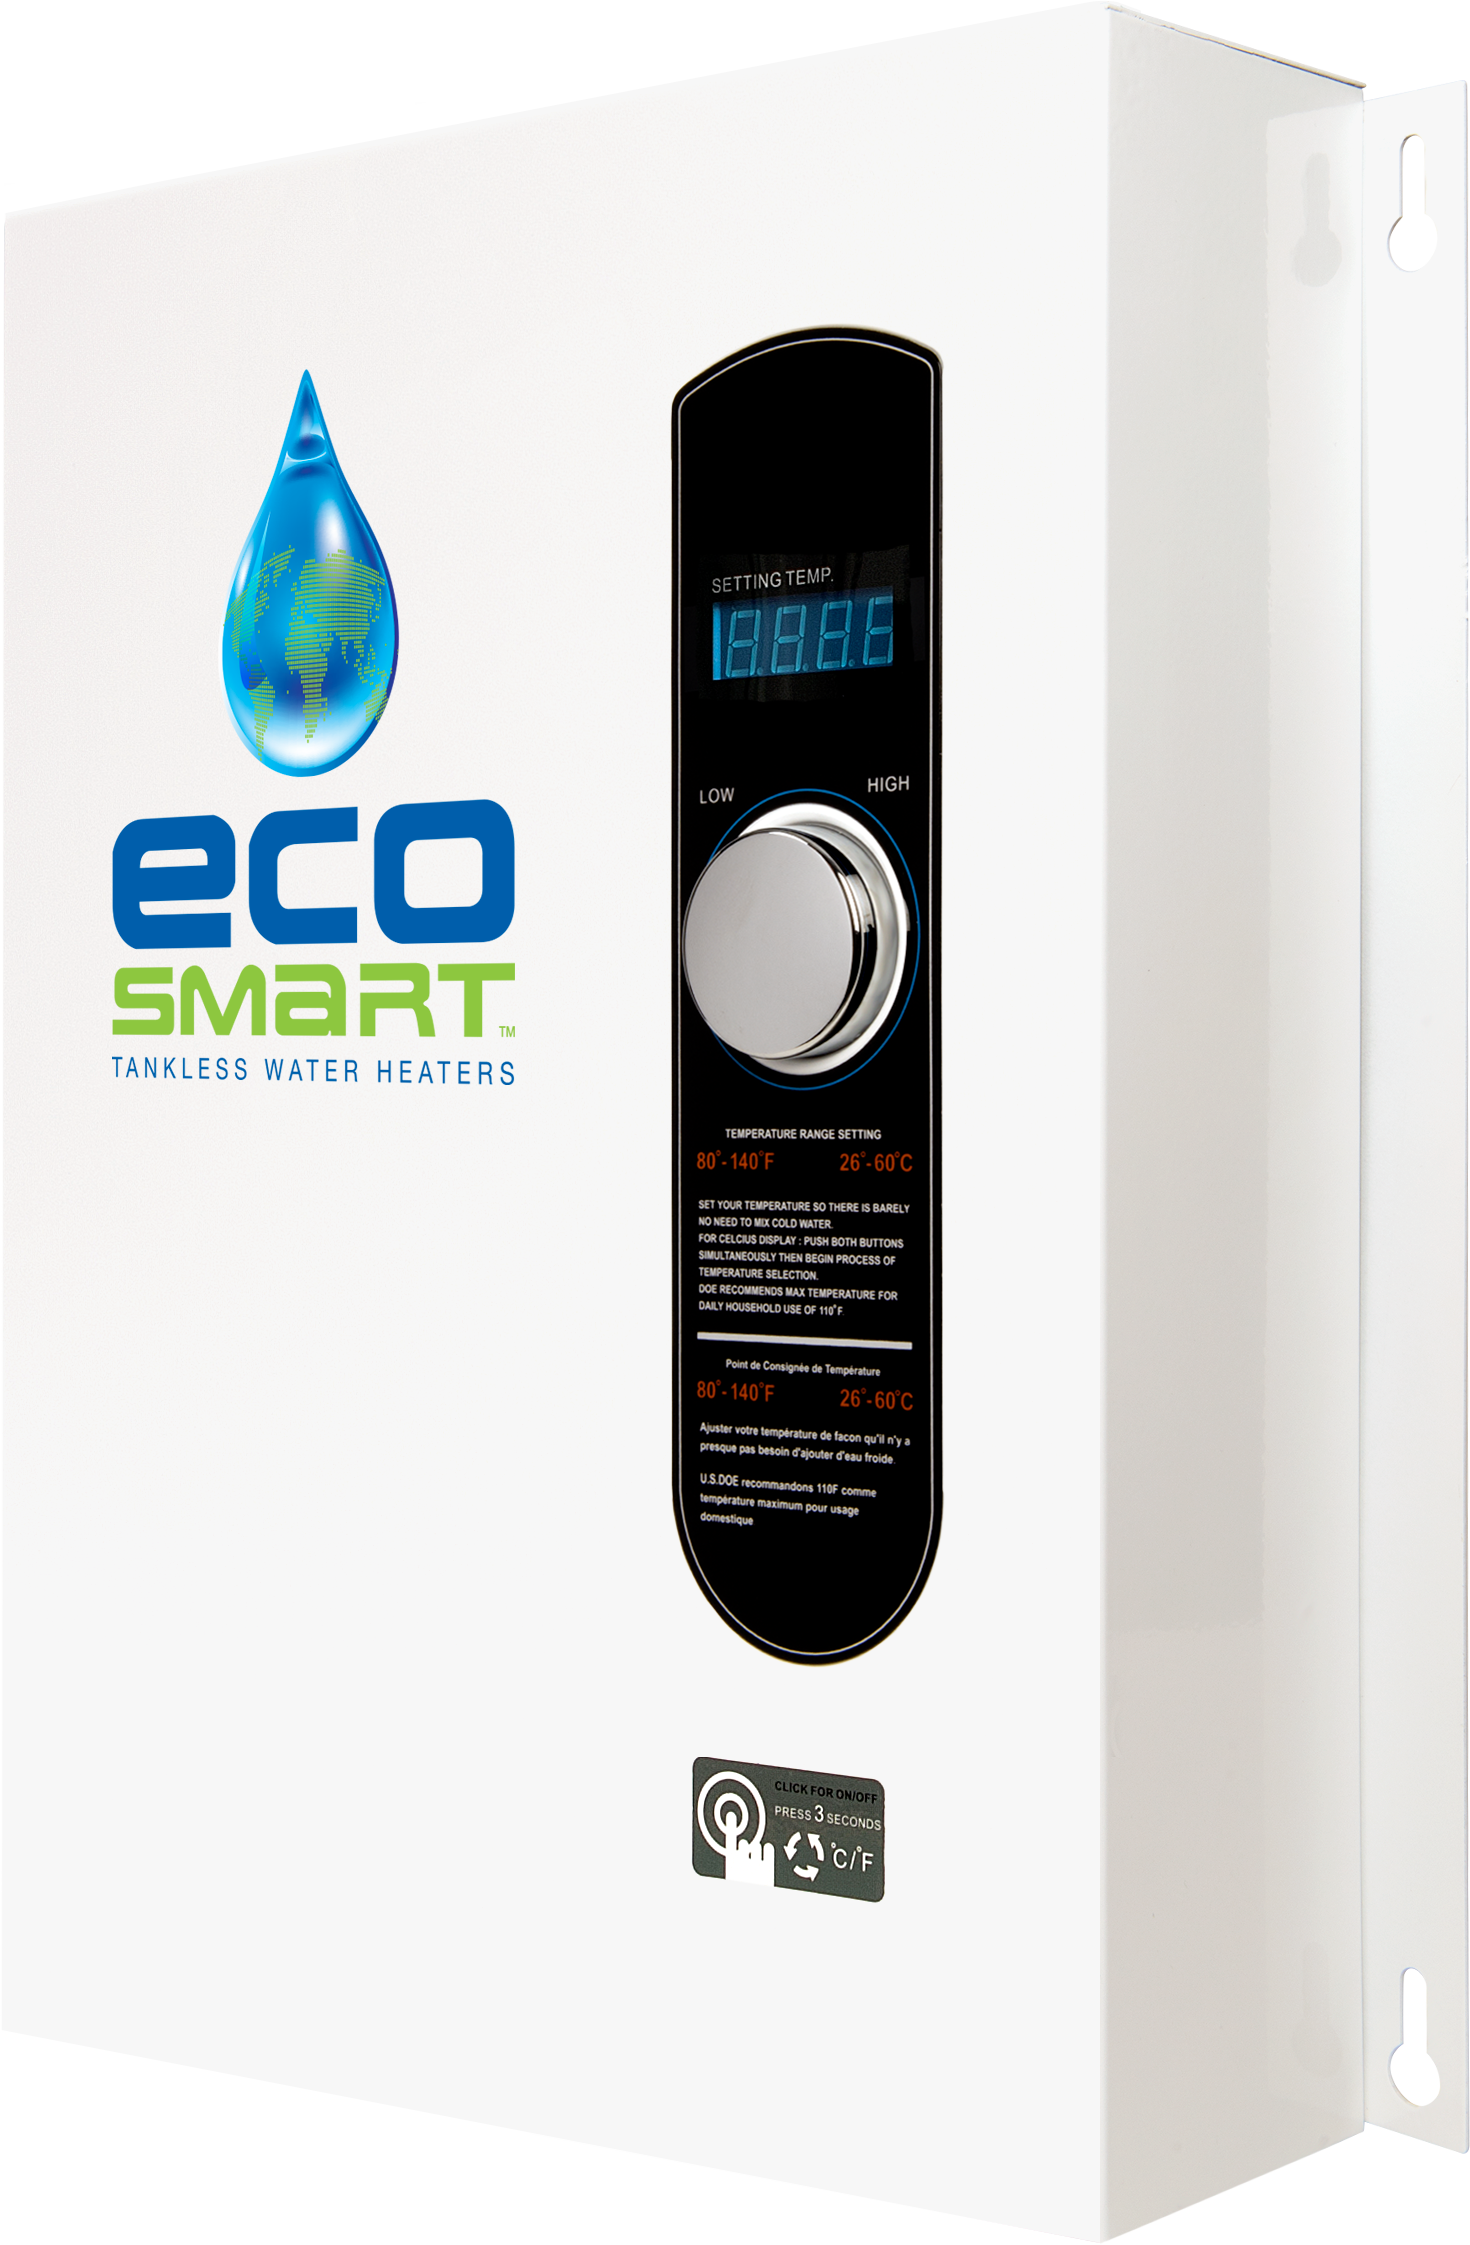 ECO 24 - EcoSmart ECO 24 27 right